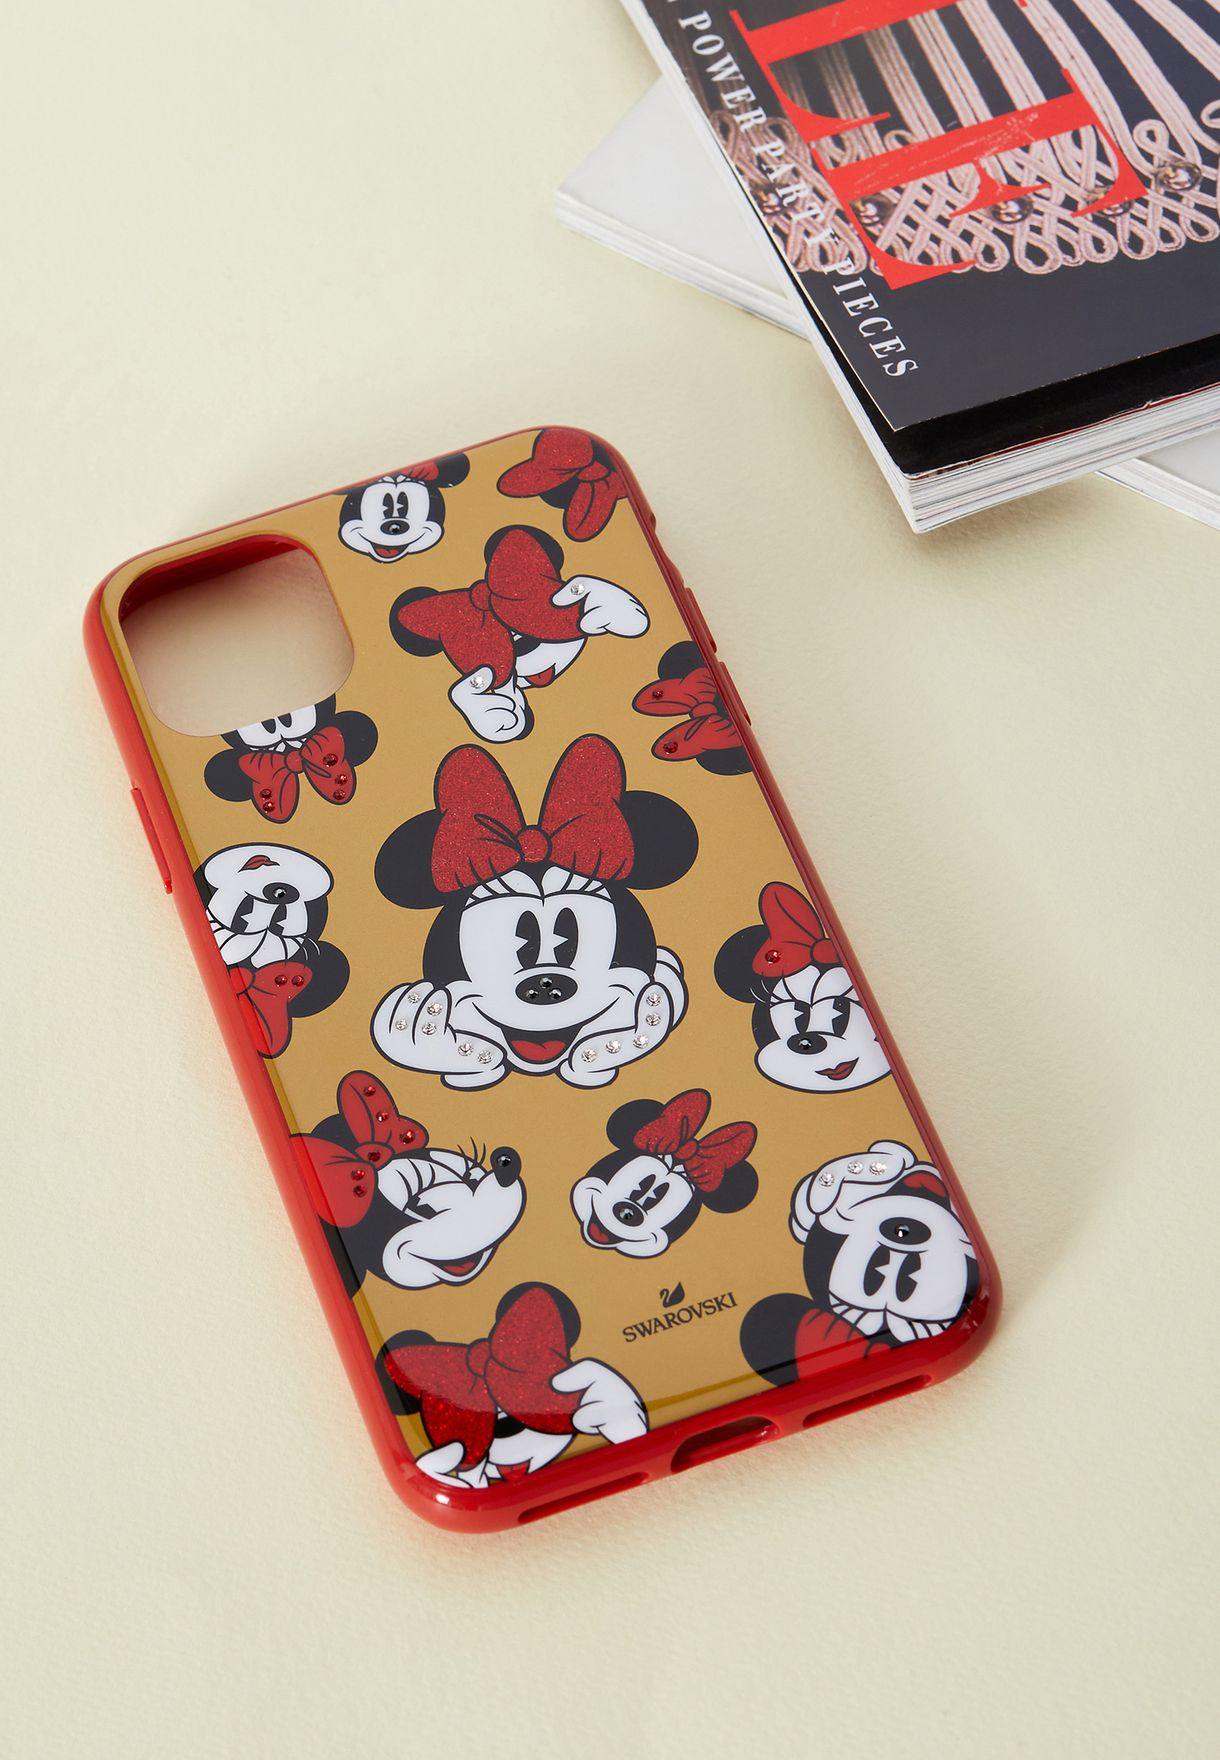 Disney Minnie Mouse iPhone 11 Pro Max Case